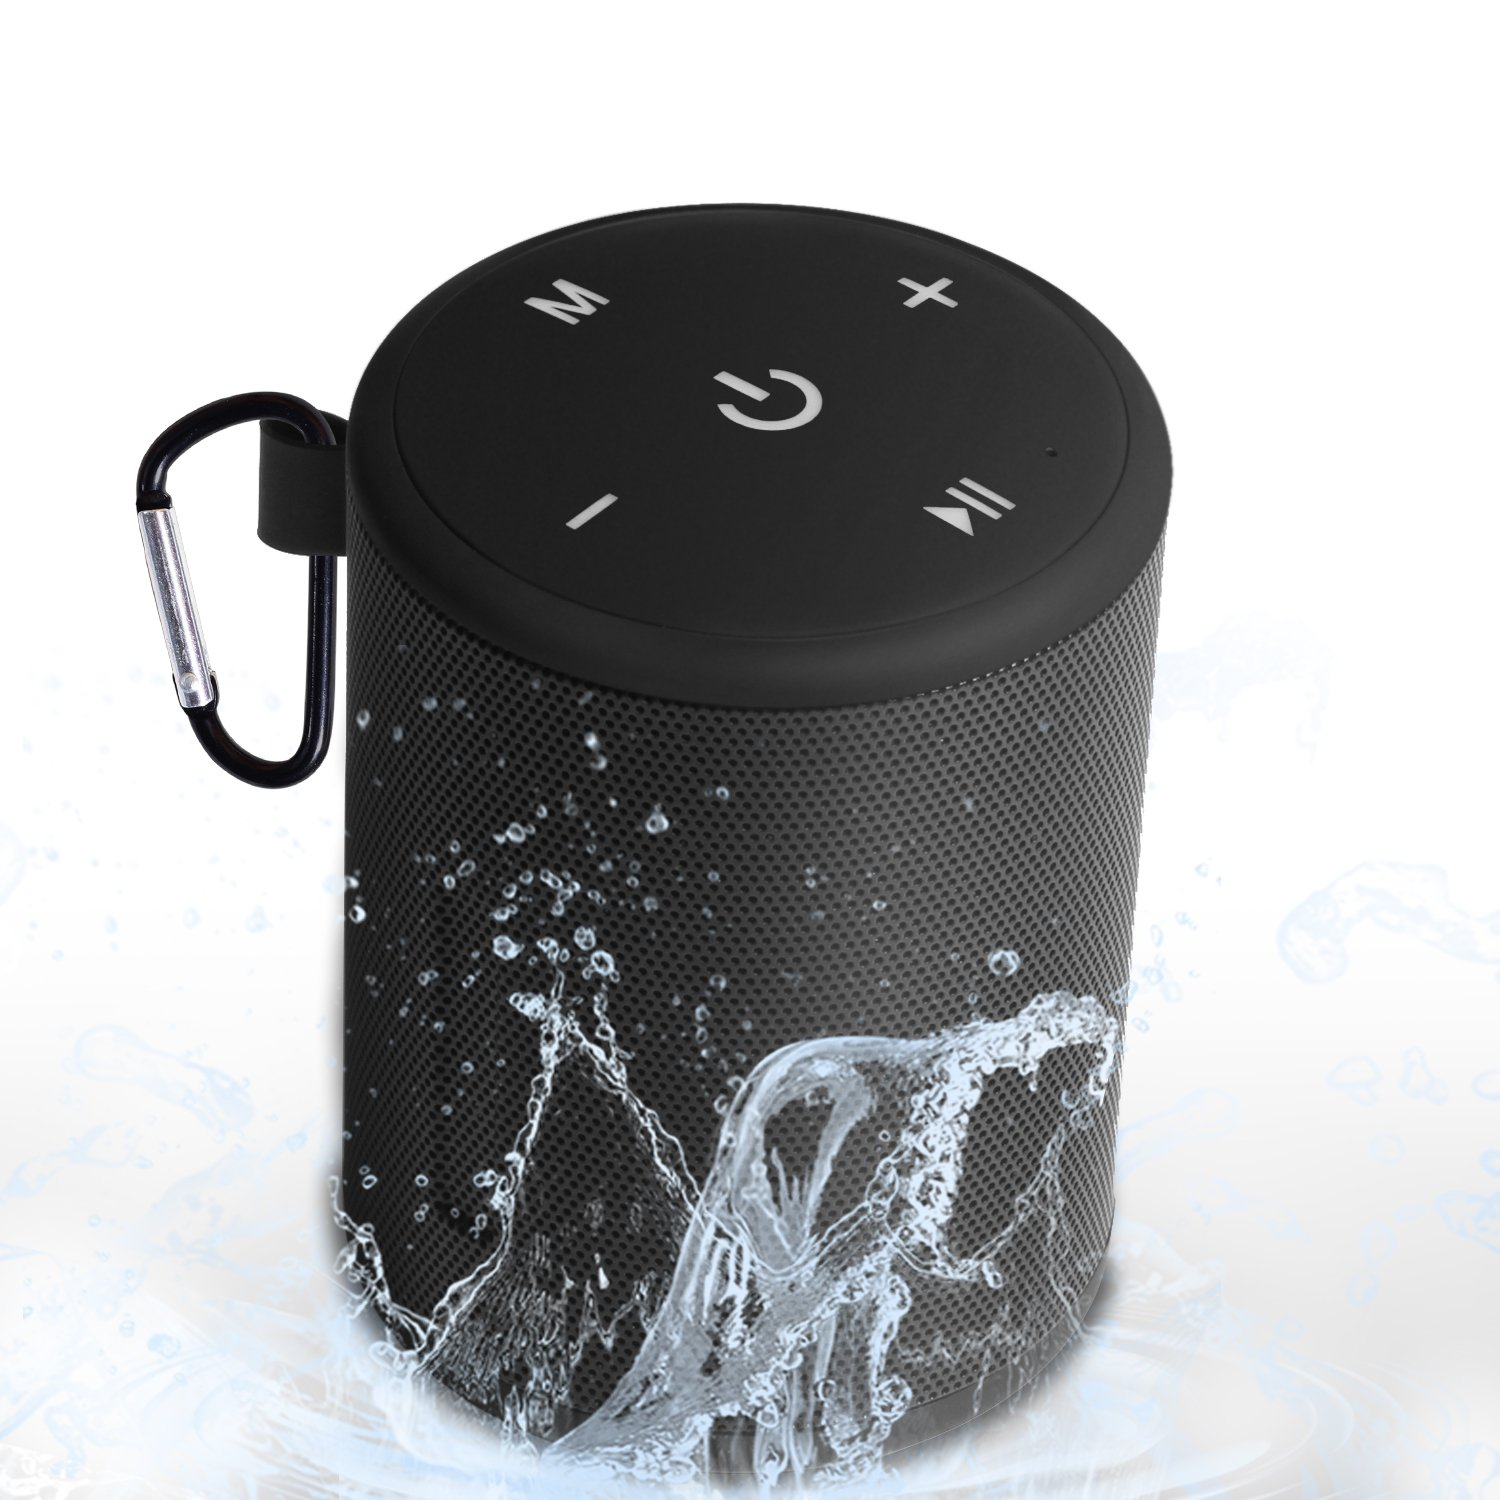 Portable Bluetooth Speaker Wireless Speakers 3D Stereo Surround Sound,TWS Sync Playback,IPX5 Water Resistance & Built-in Mic,Shockproof and Dust Proof, Suitable for Indoors Outdoors(Black)